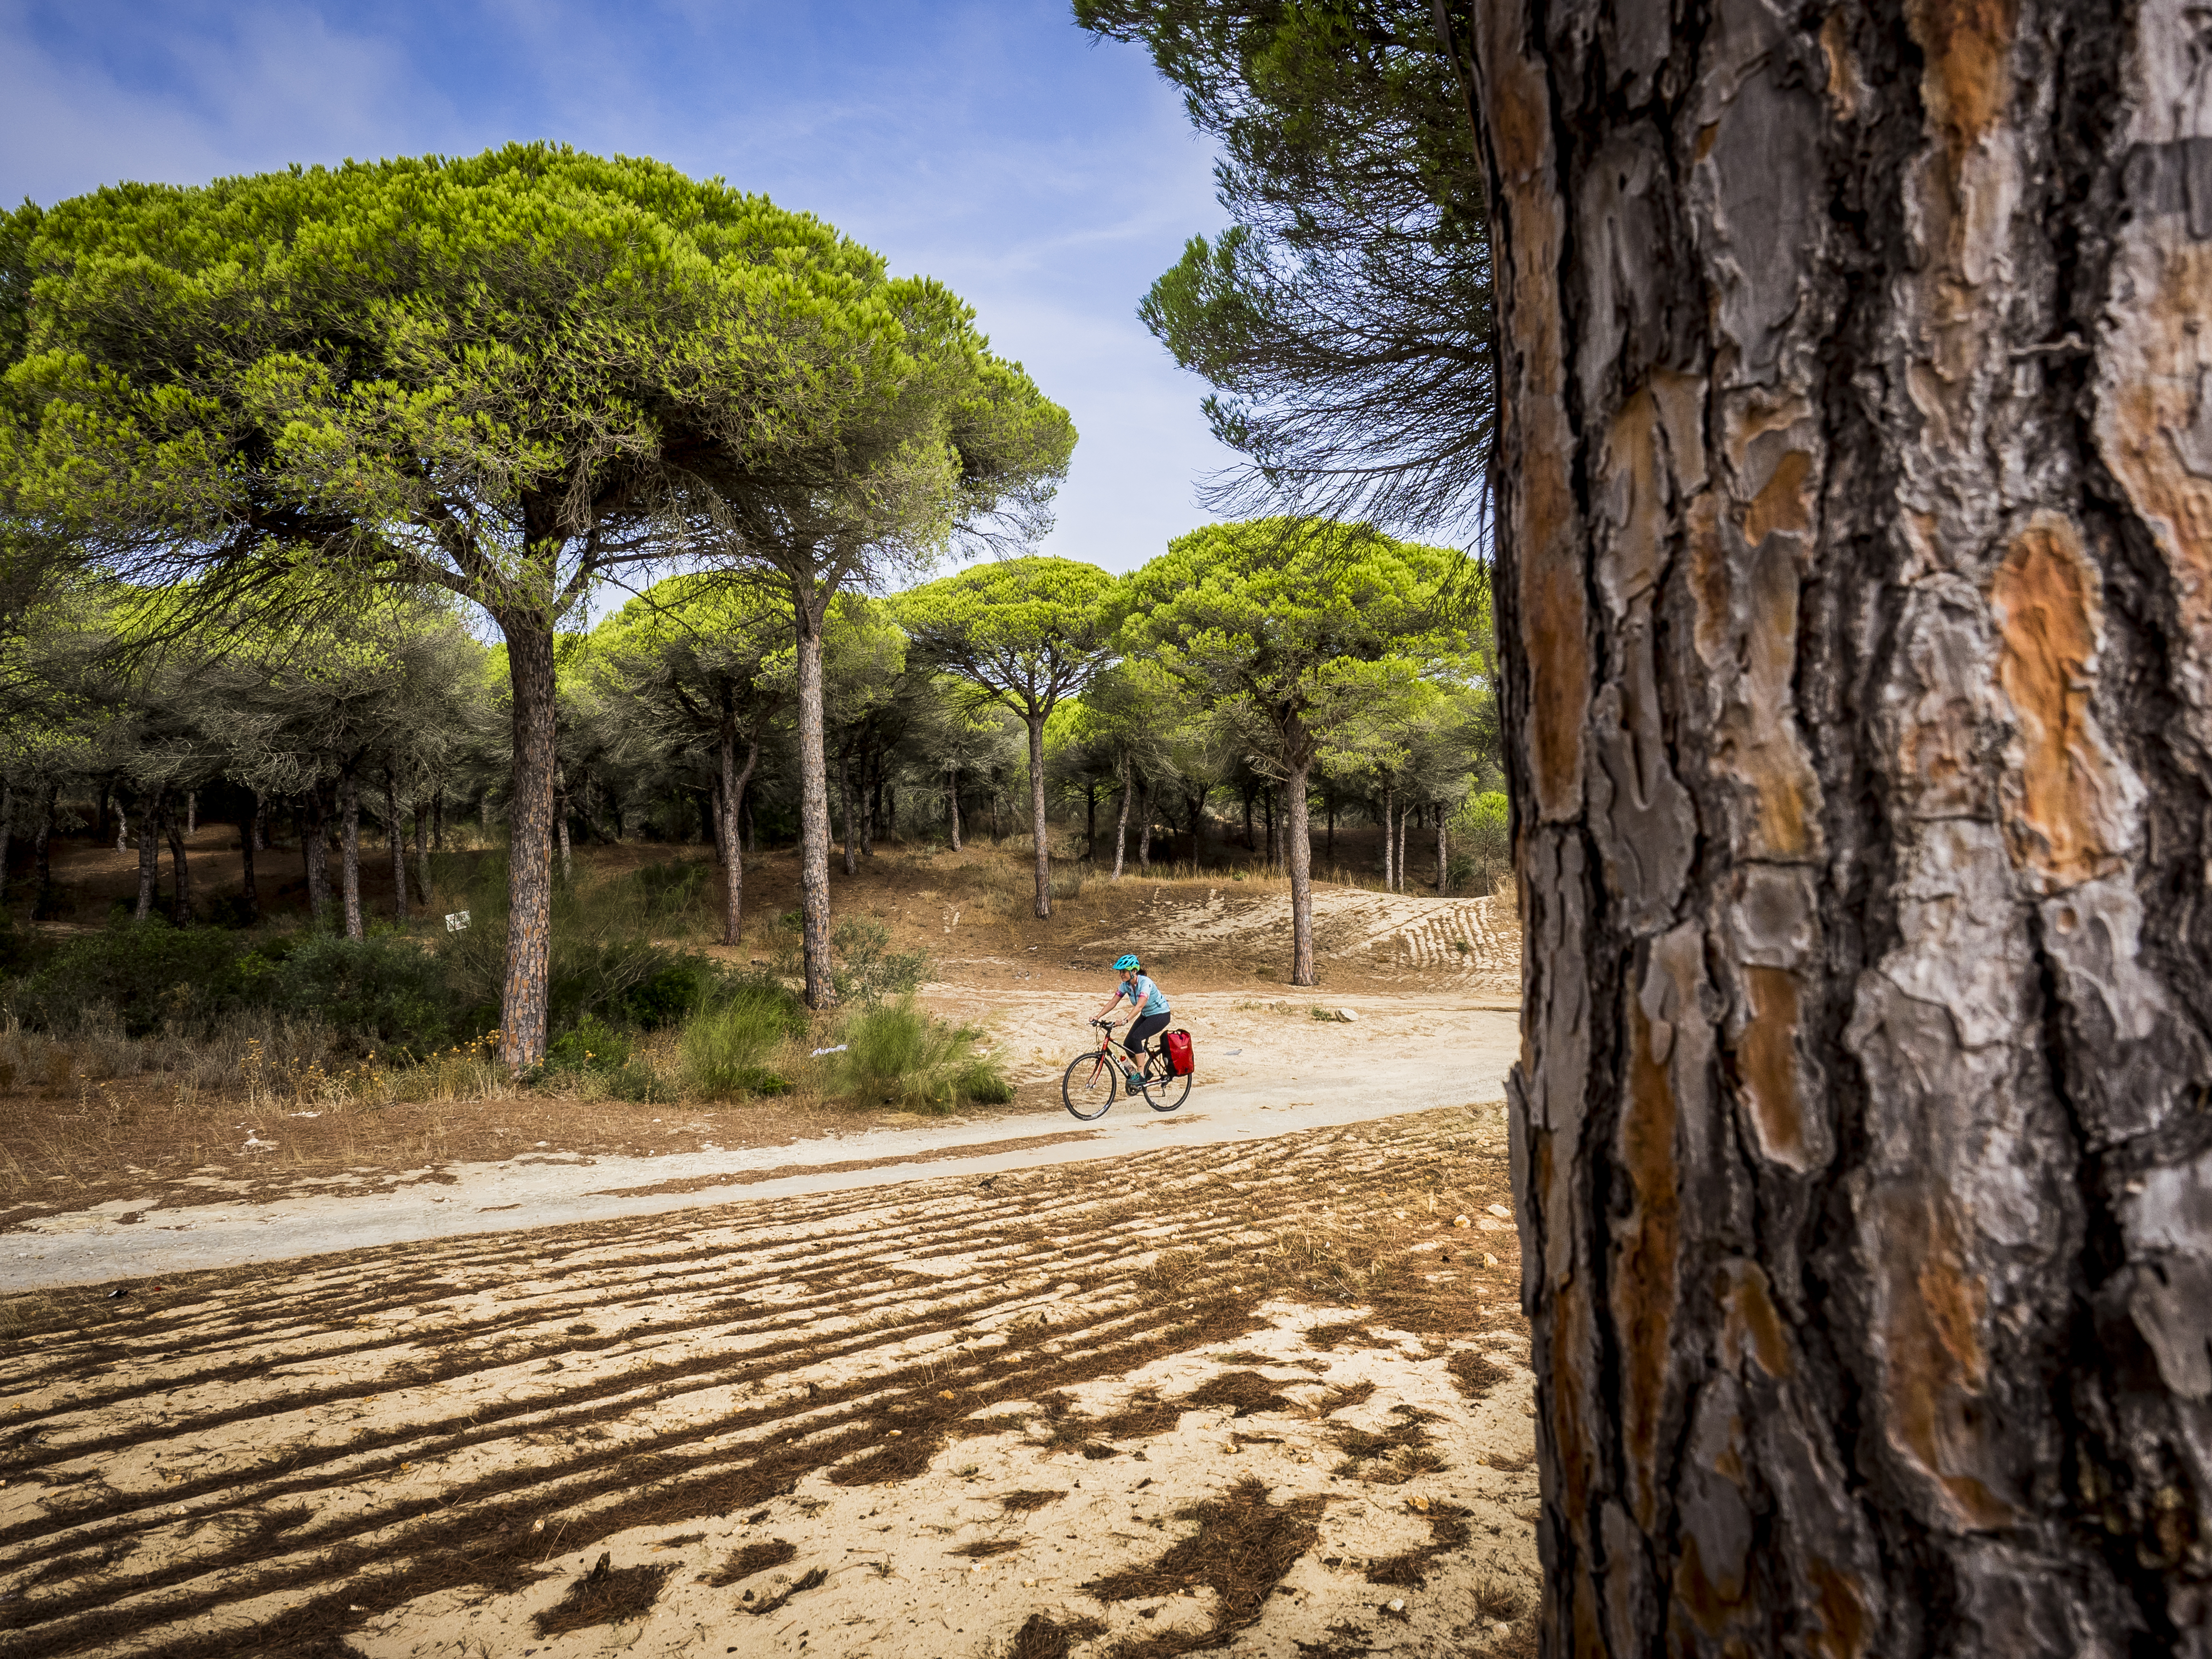 Pine trees in Andalucia, Spain